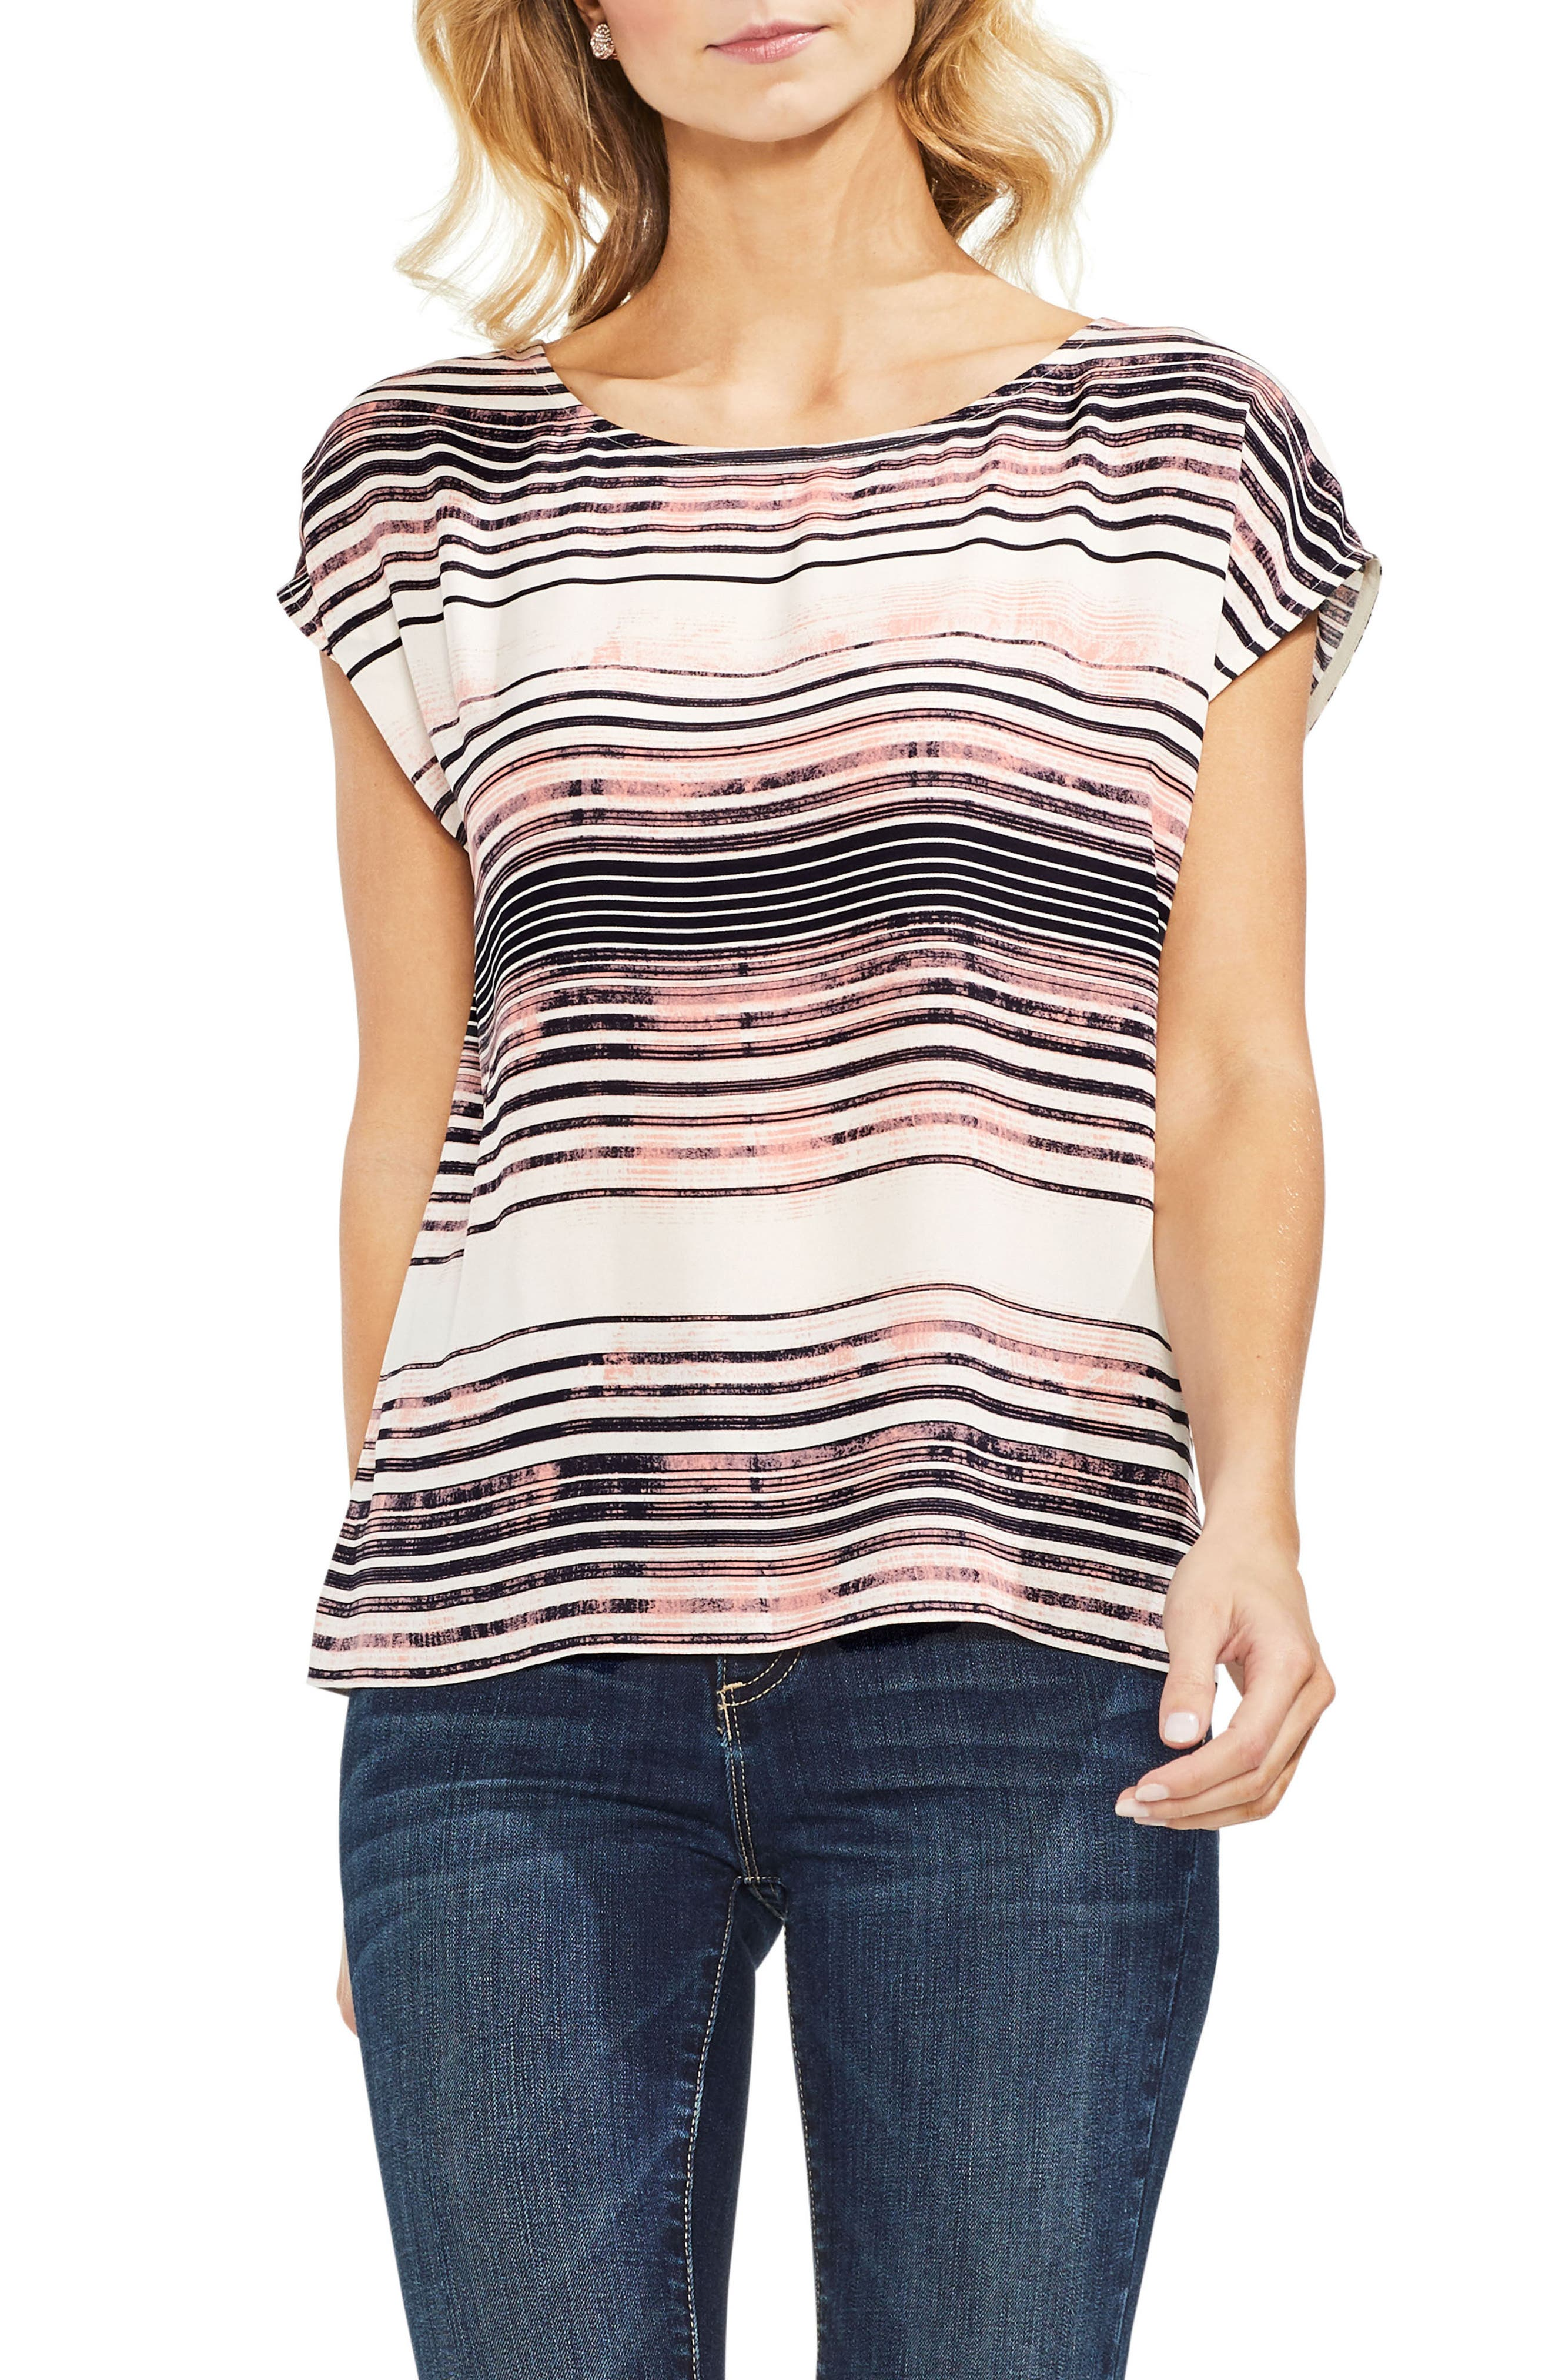 Ancient Muses Stripe Top,                         Main,                         color, 900